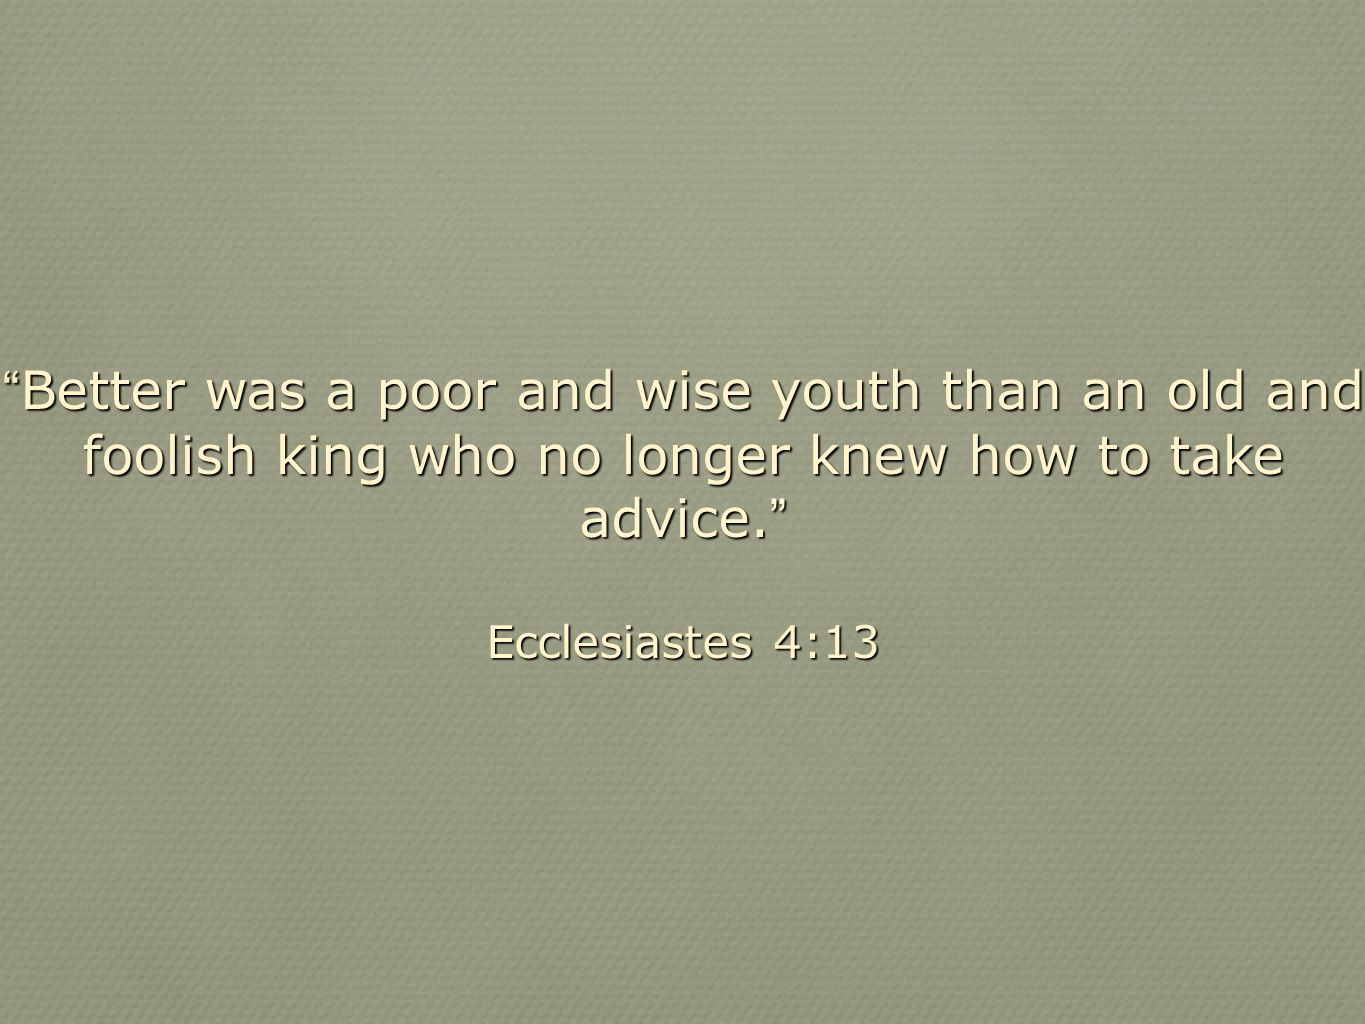 Better was a poor and wise youth than an old and foolish king who no longer knew how to take advice.